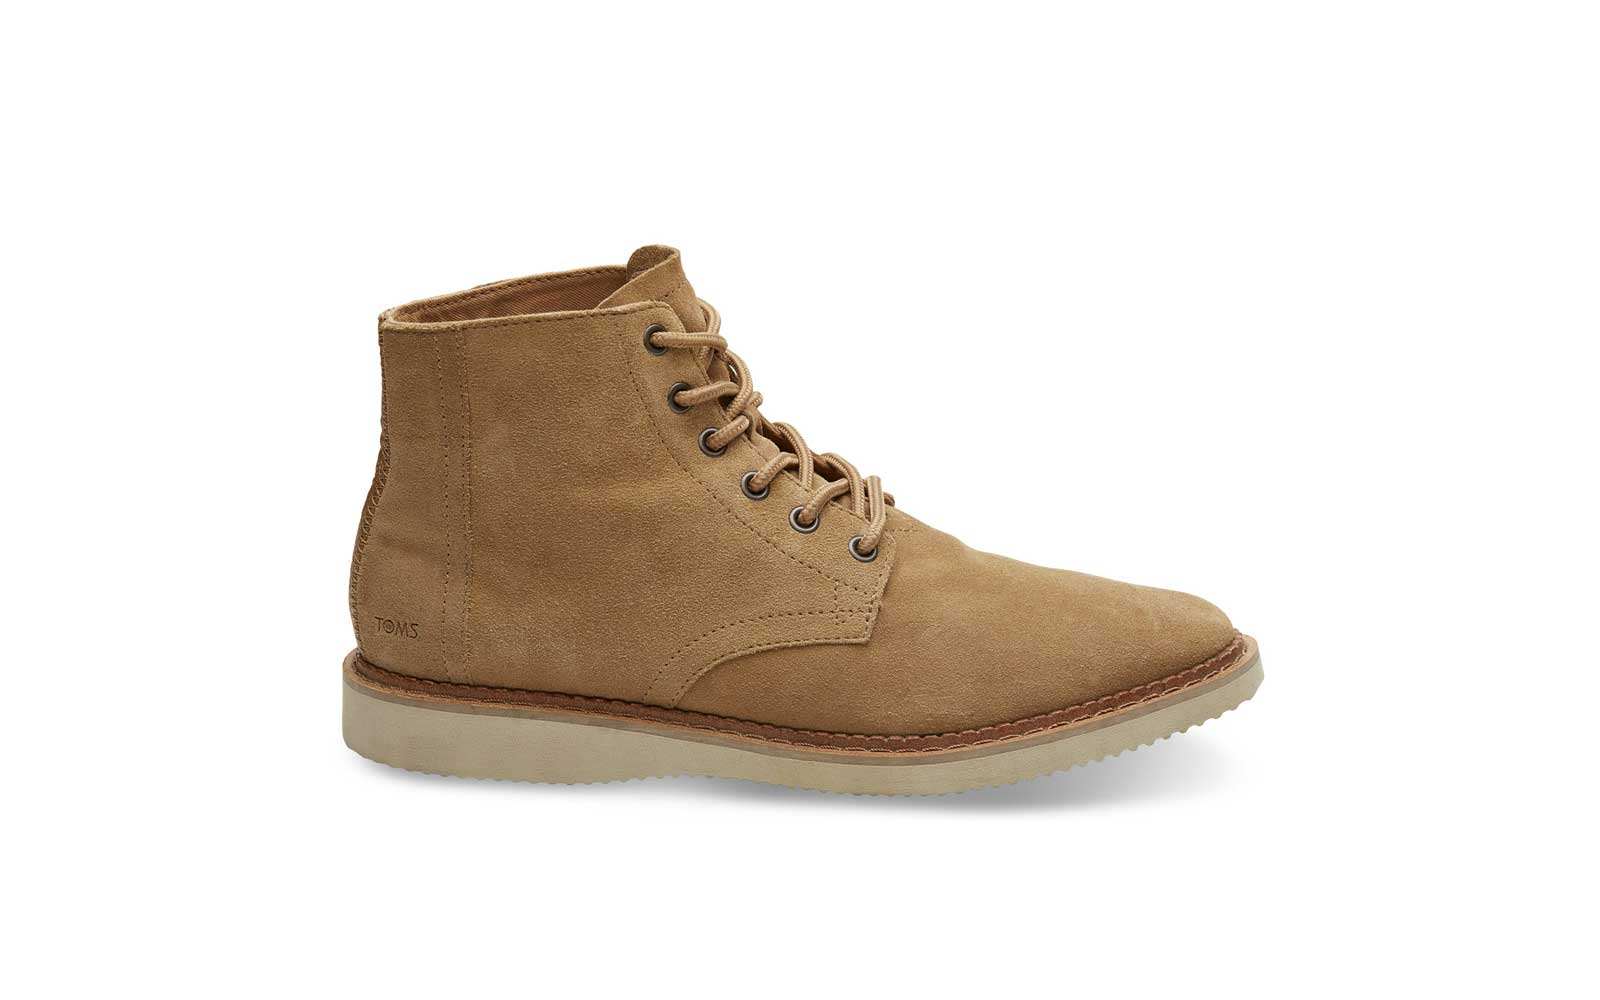 toms mens boots fashion